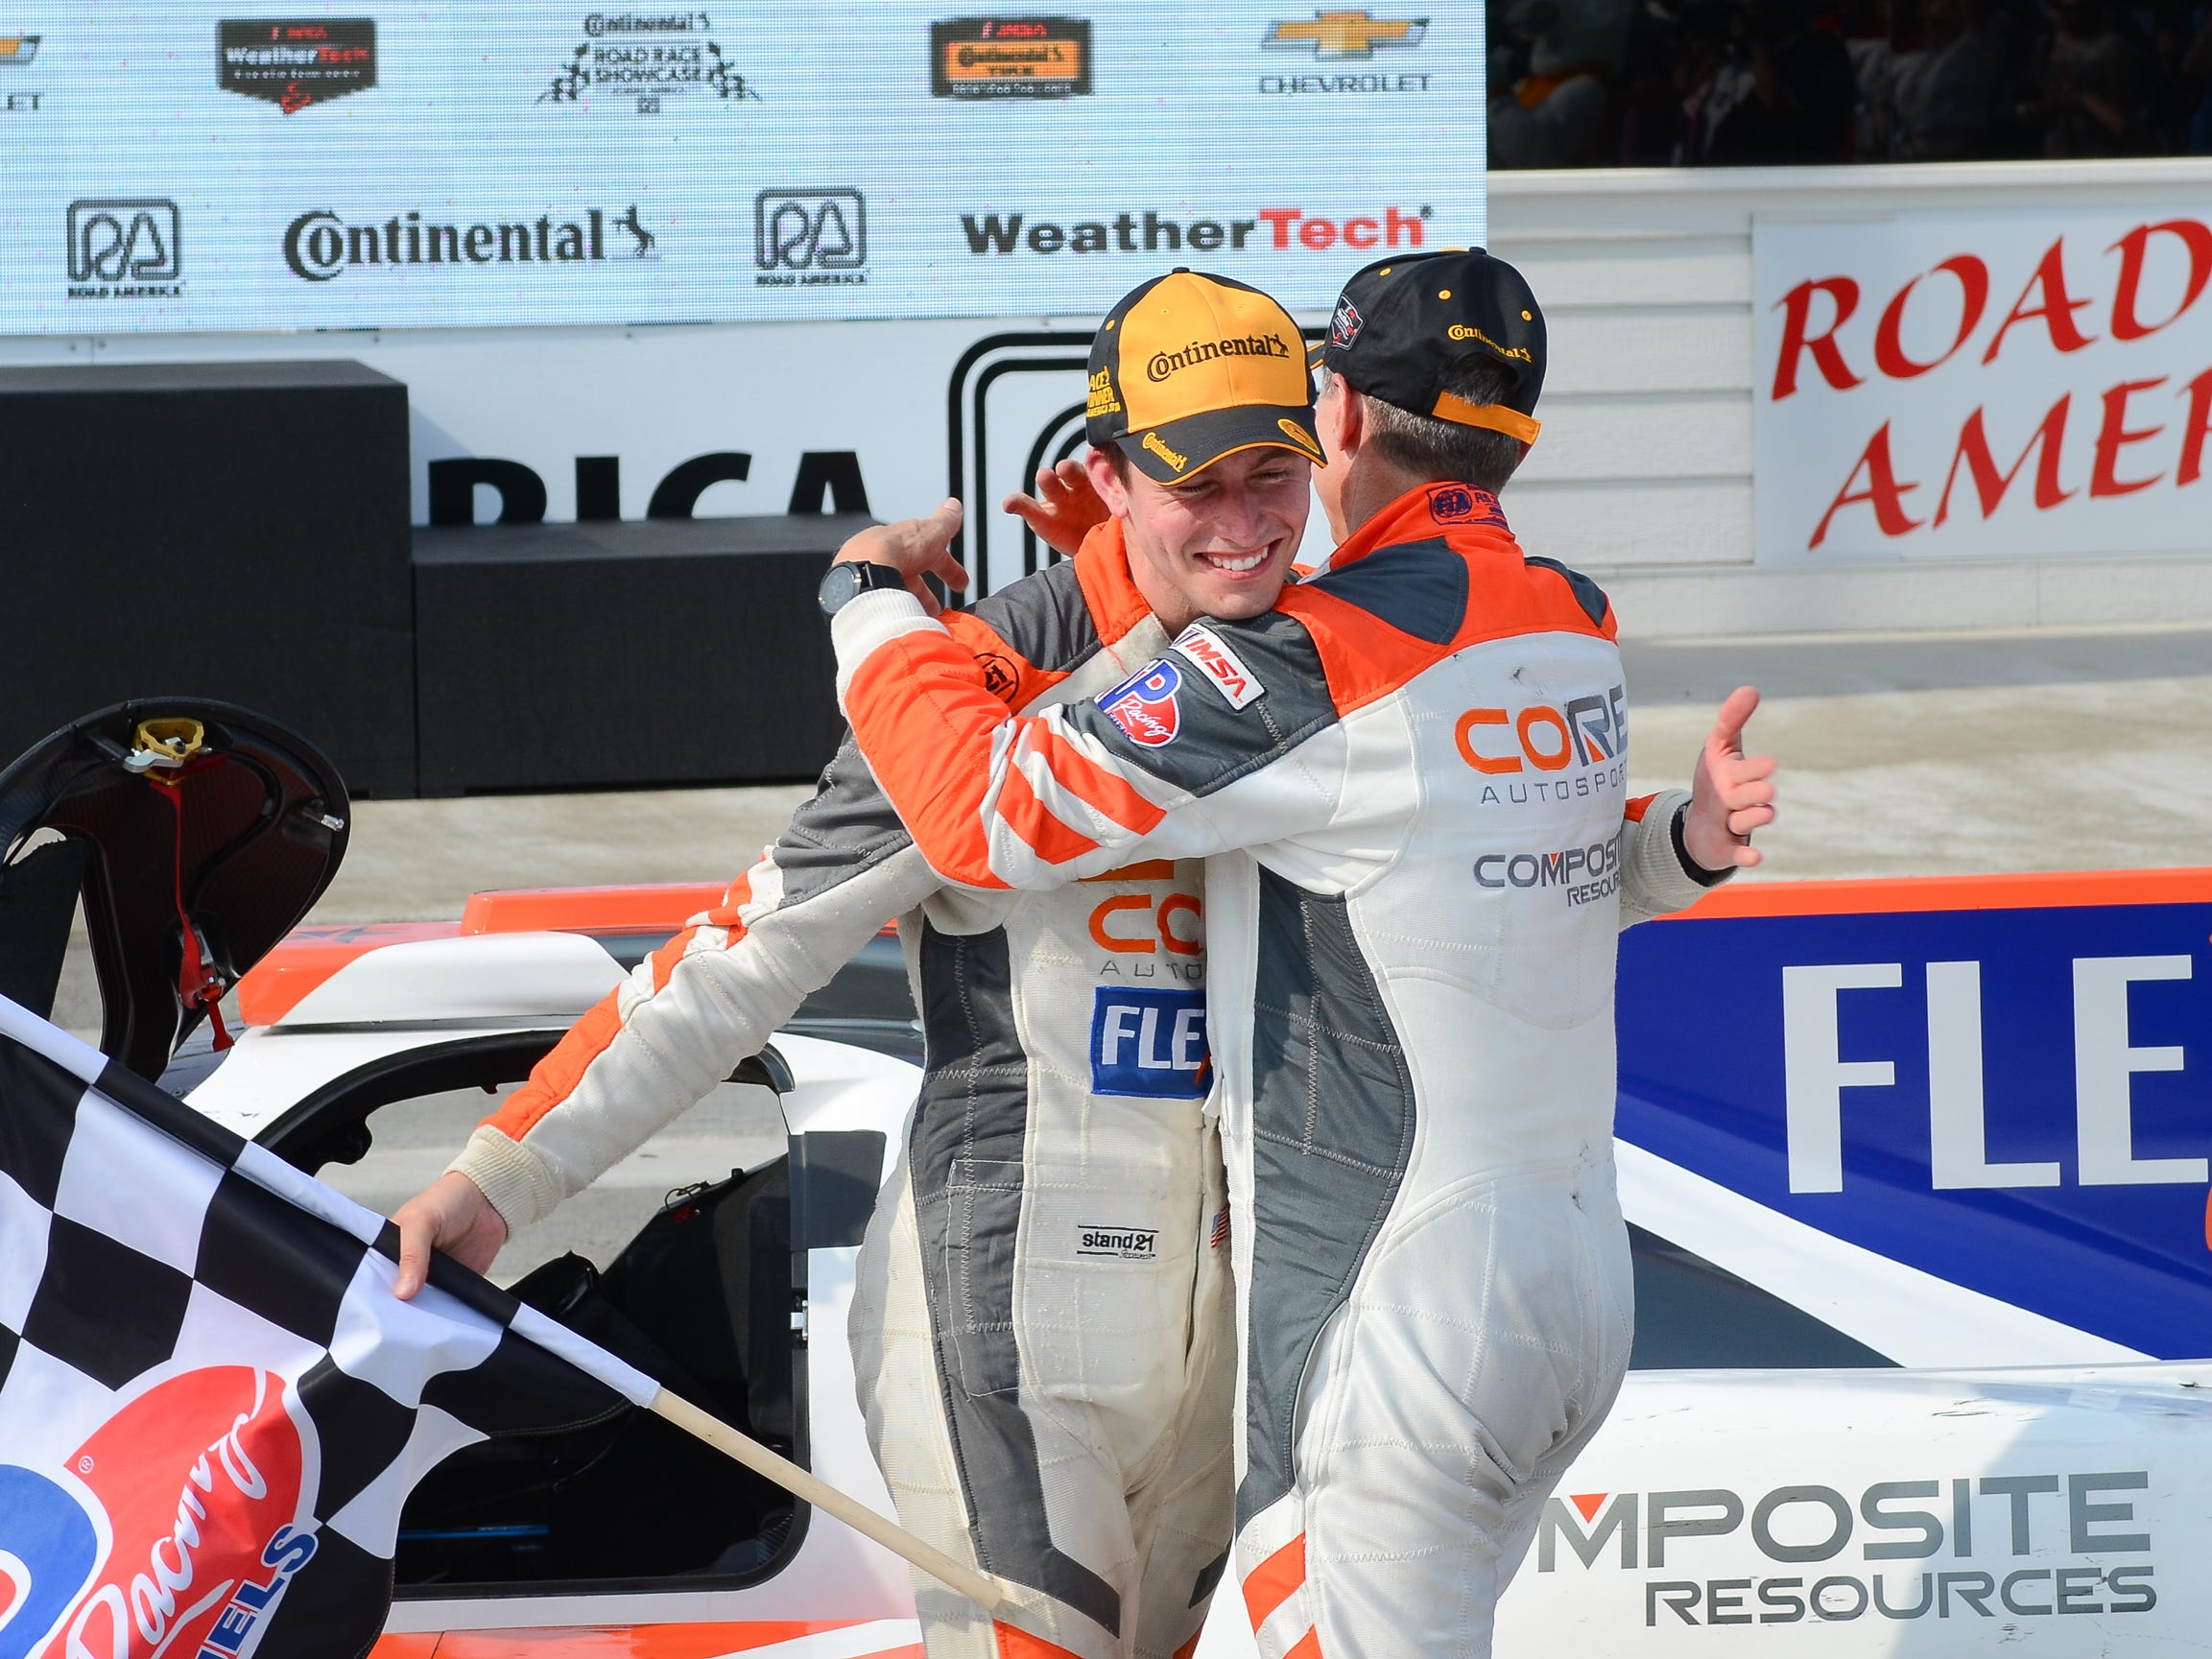 Colin Braun gets a hug from co-driver Jonathan Bennett after winning the the Continental Tire Road Race Showcase on Sunday, August 5, 2018, at Road America in Elkhart Lake, Wis.